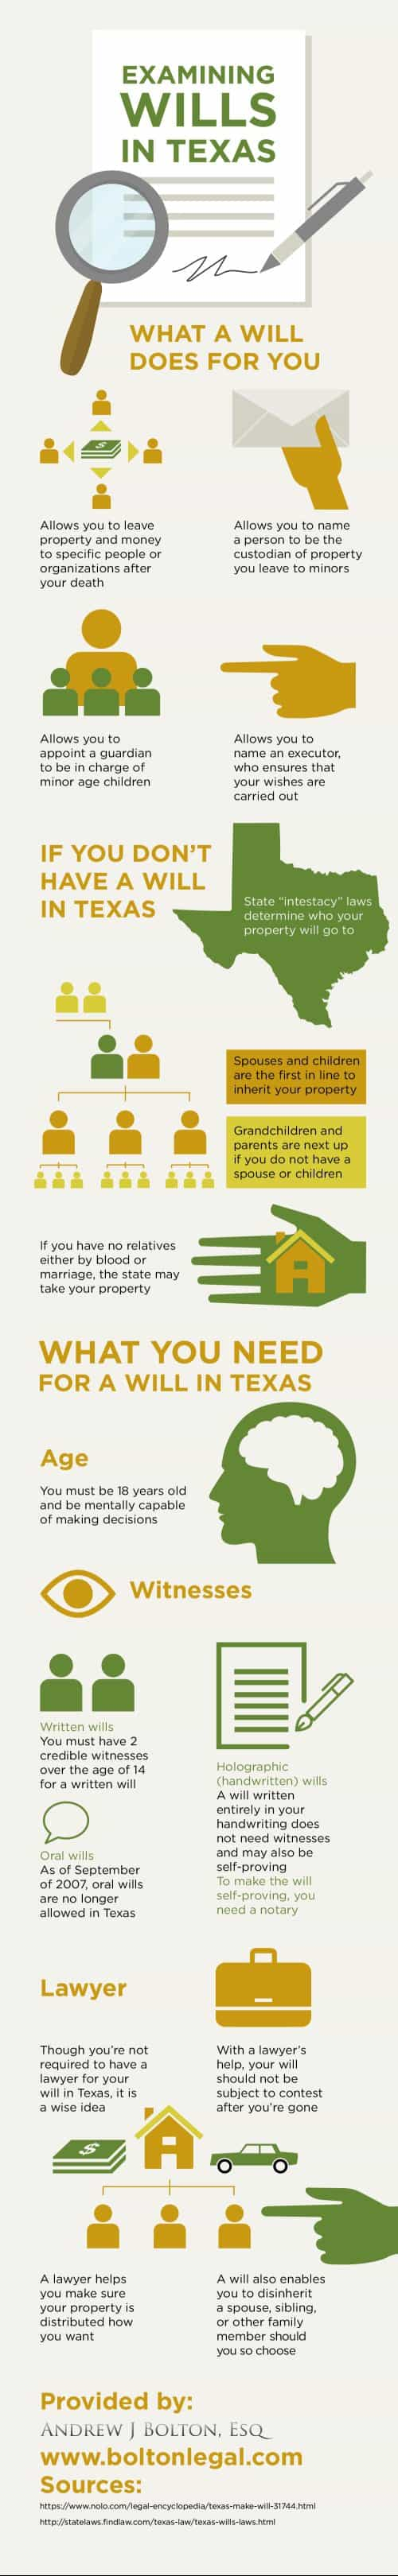 Examining Wills in Texas